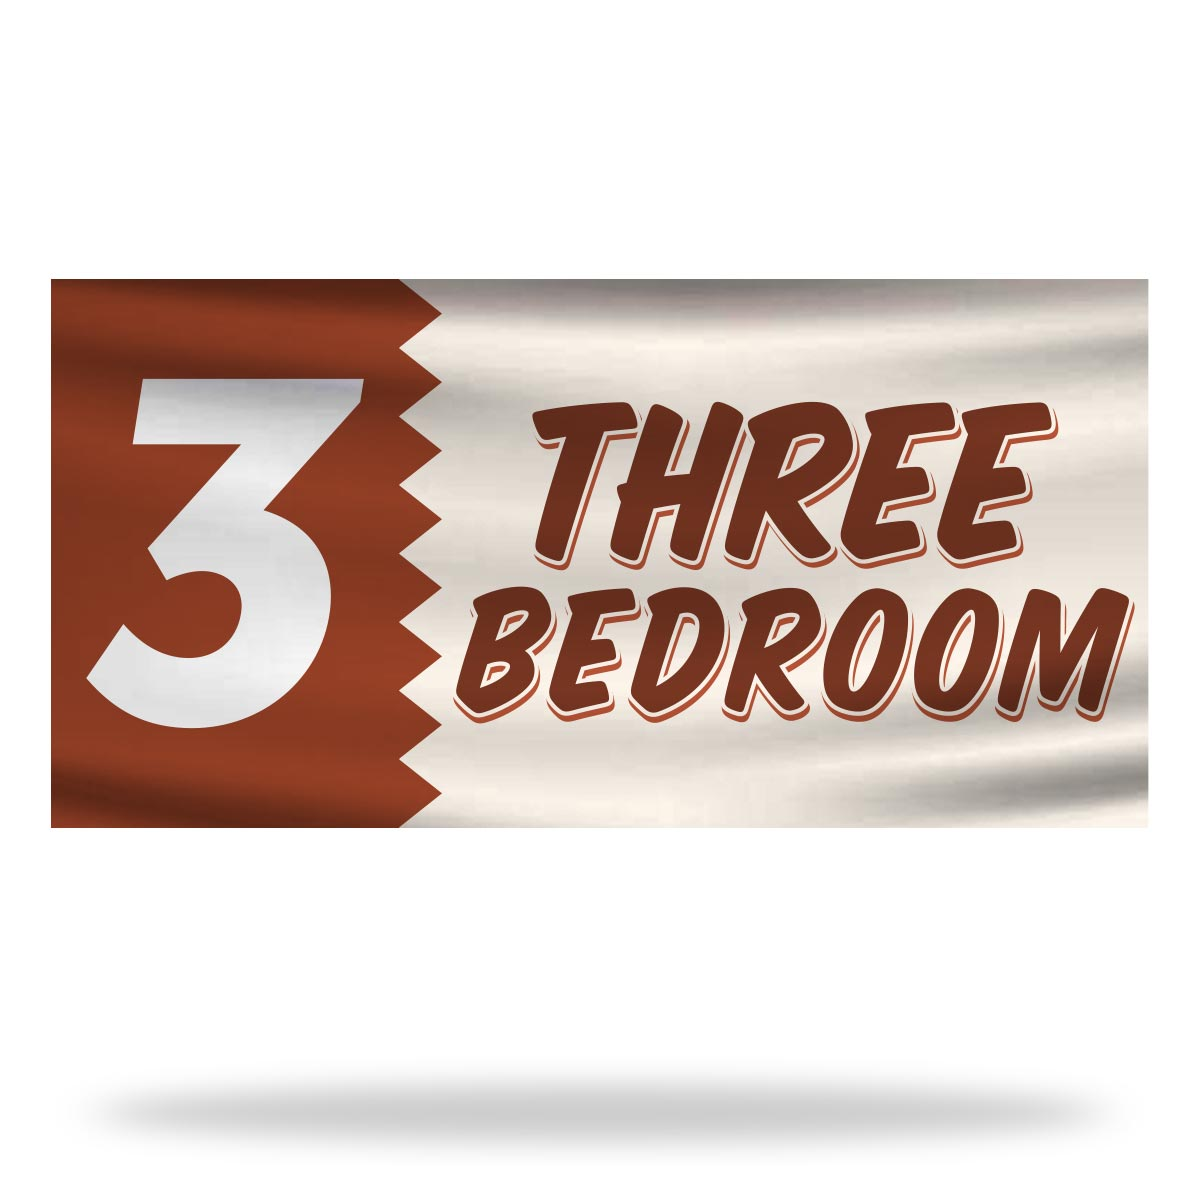 3 Bed Room Flags & Banners Design